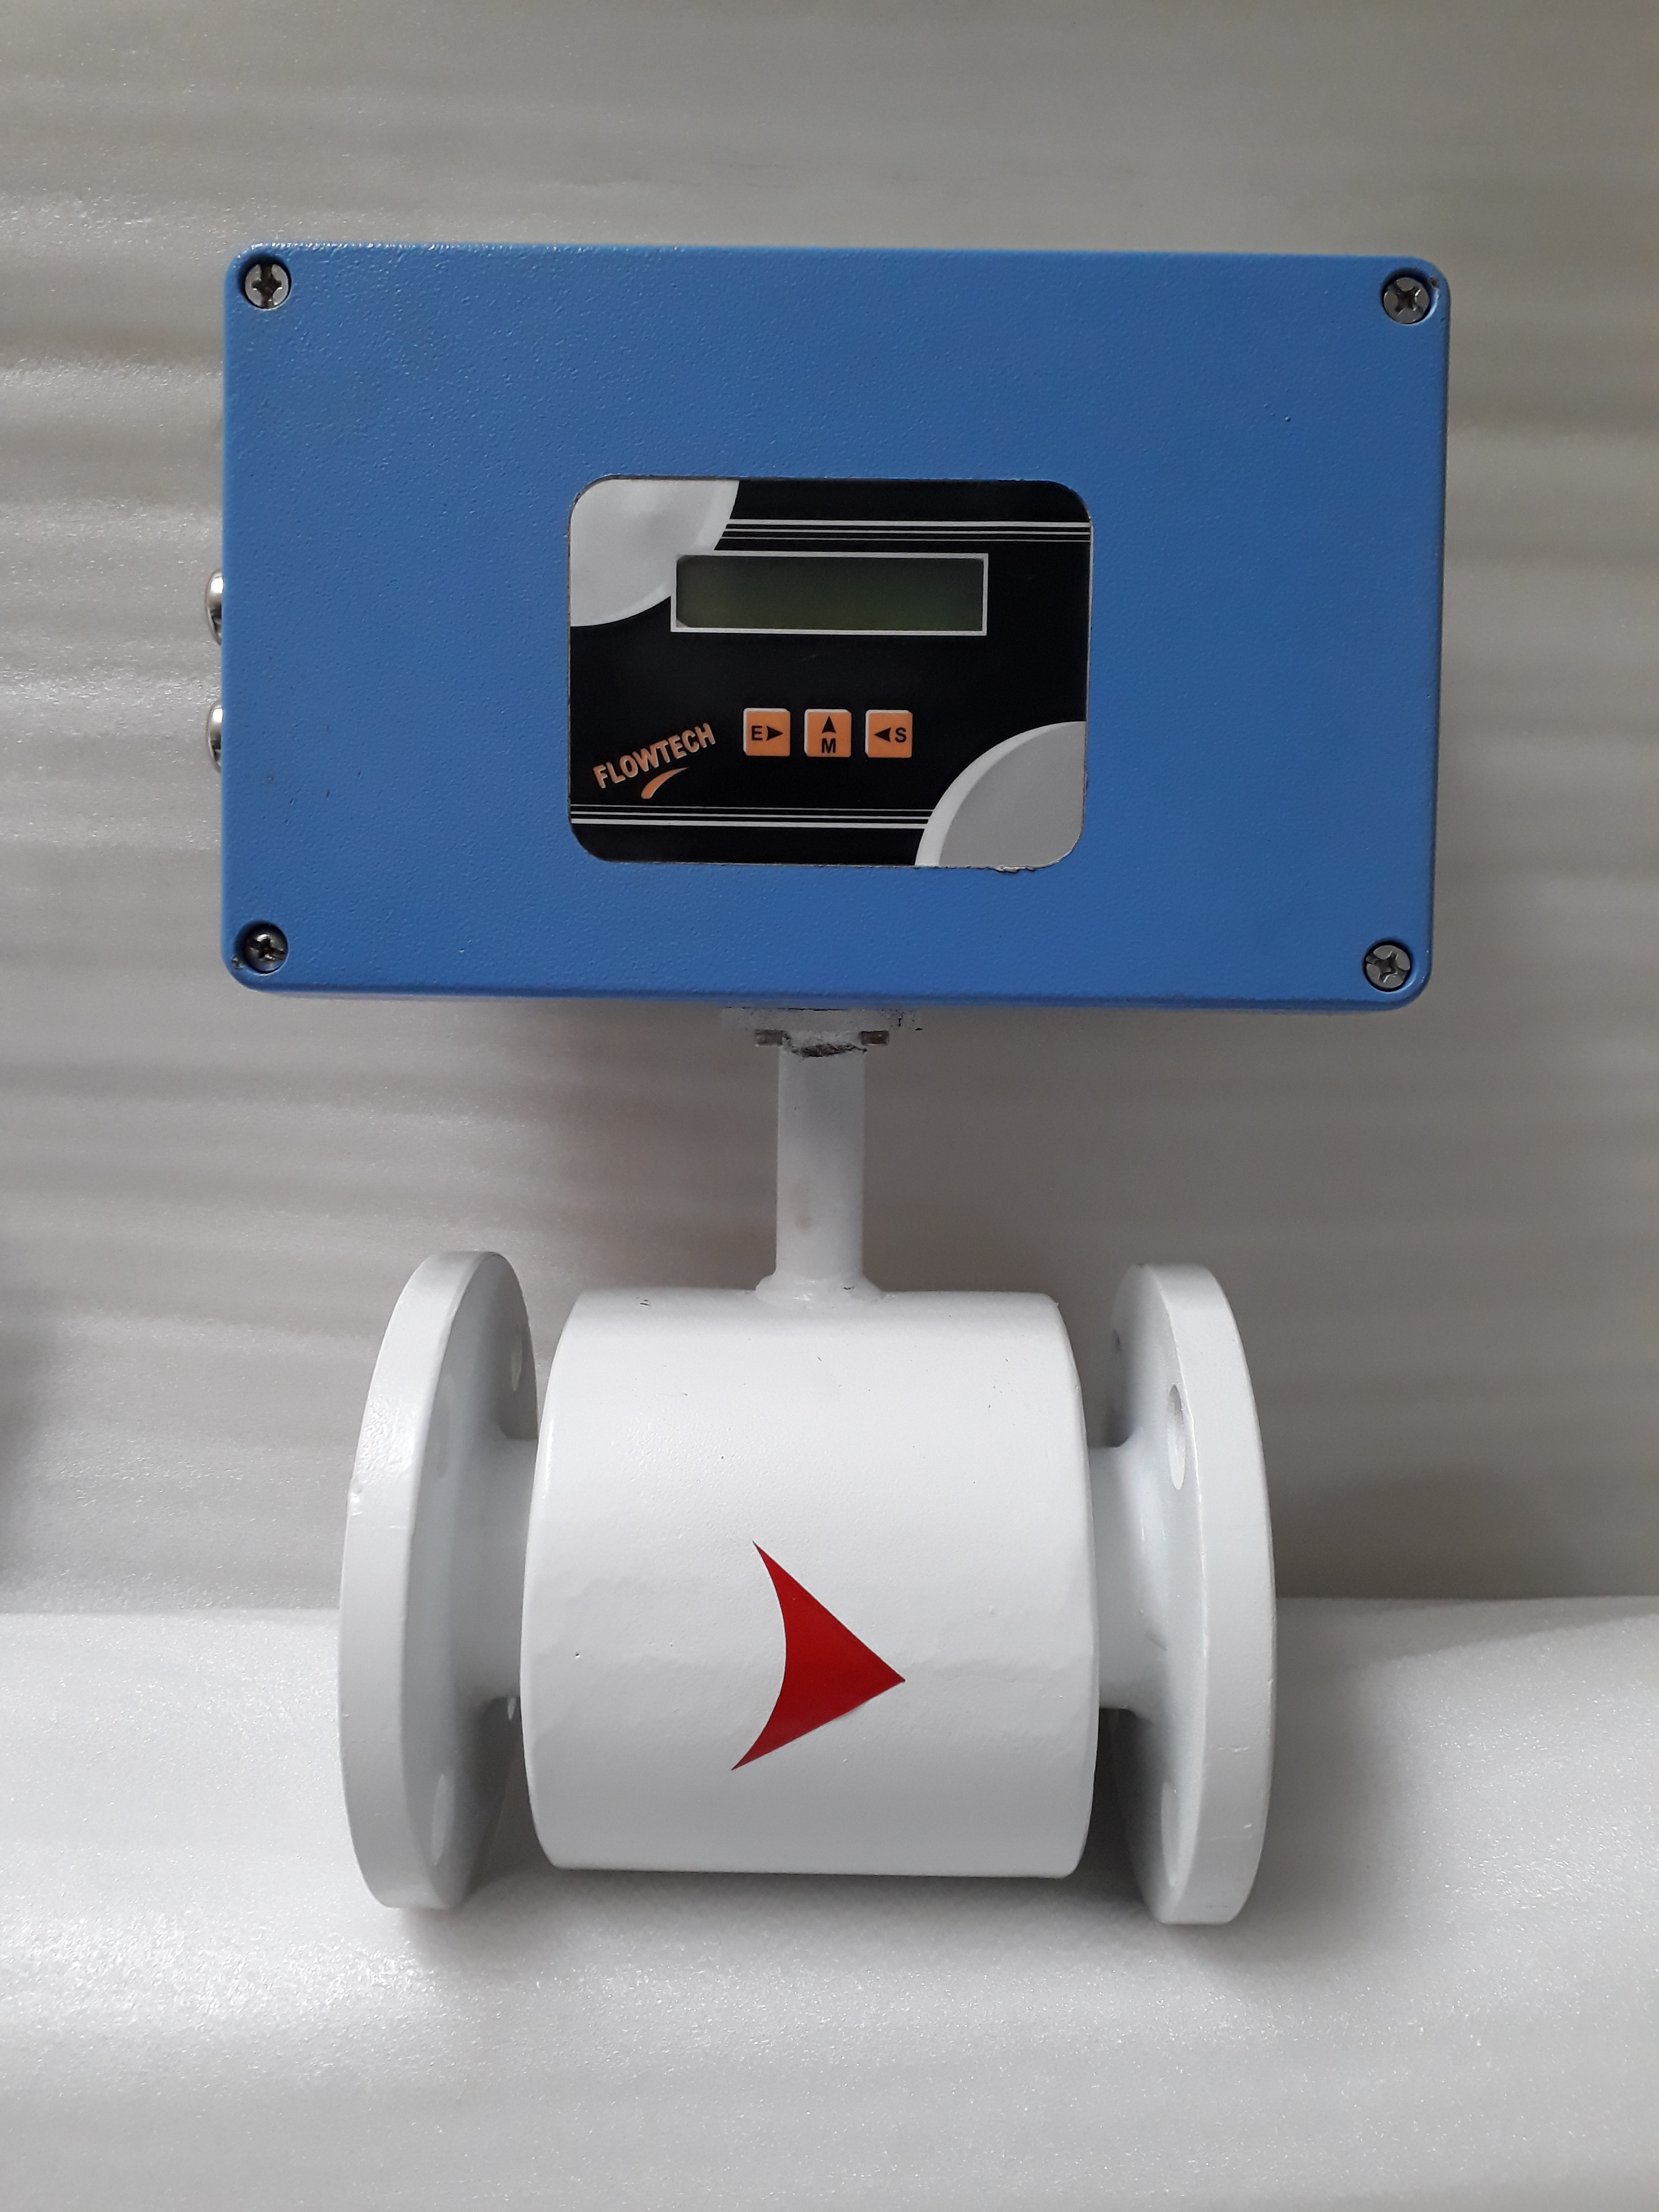 Flocounter Economical Digital Water Flow Meter